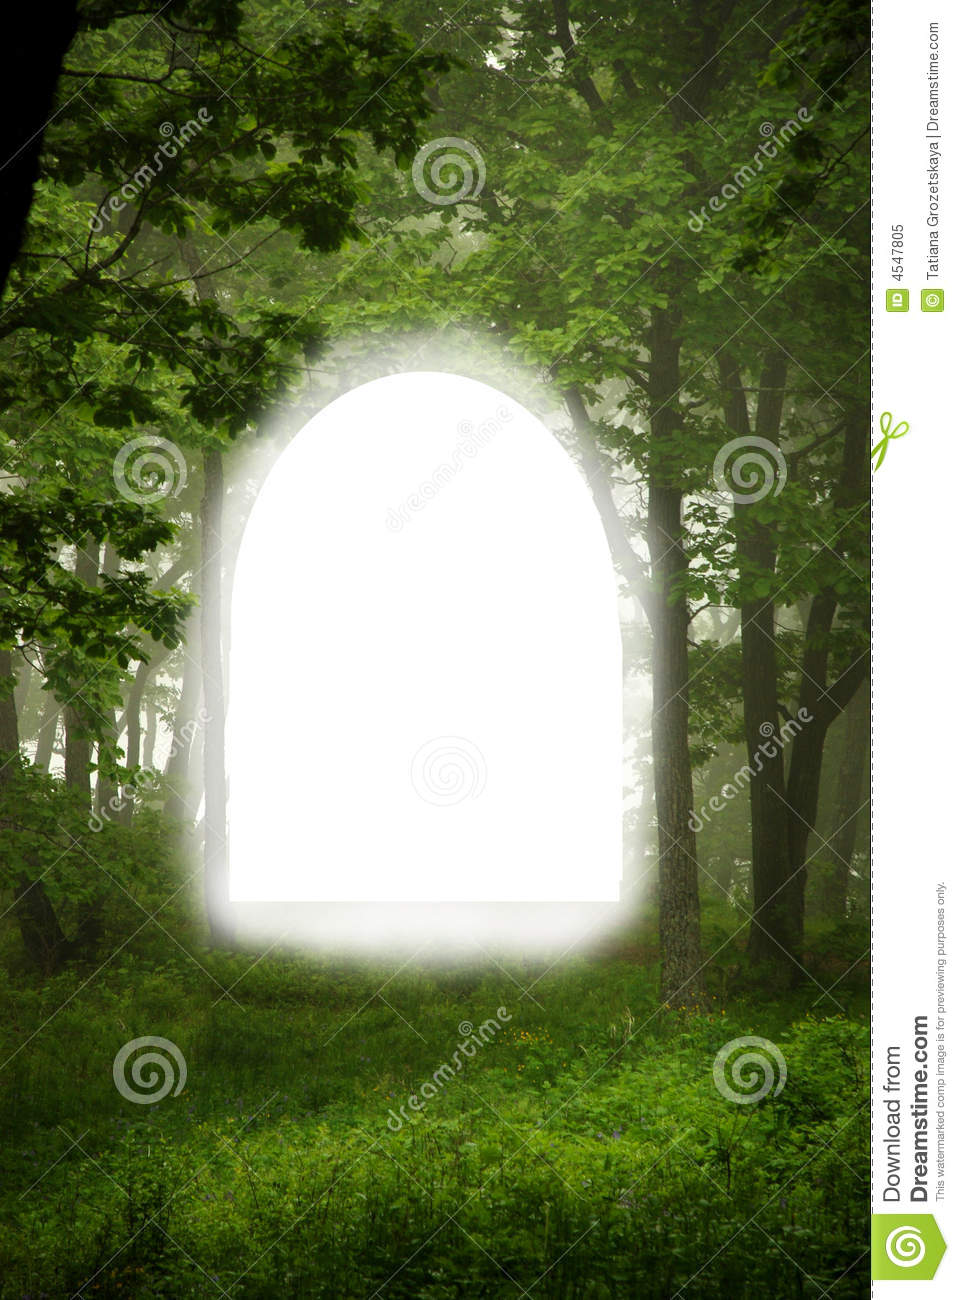 Forest window, natural frame for text, design element, summer.